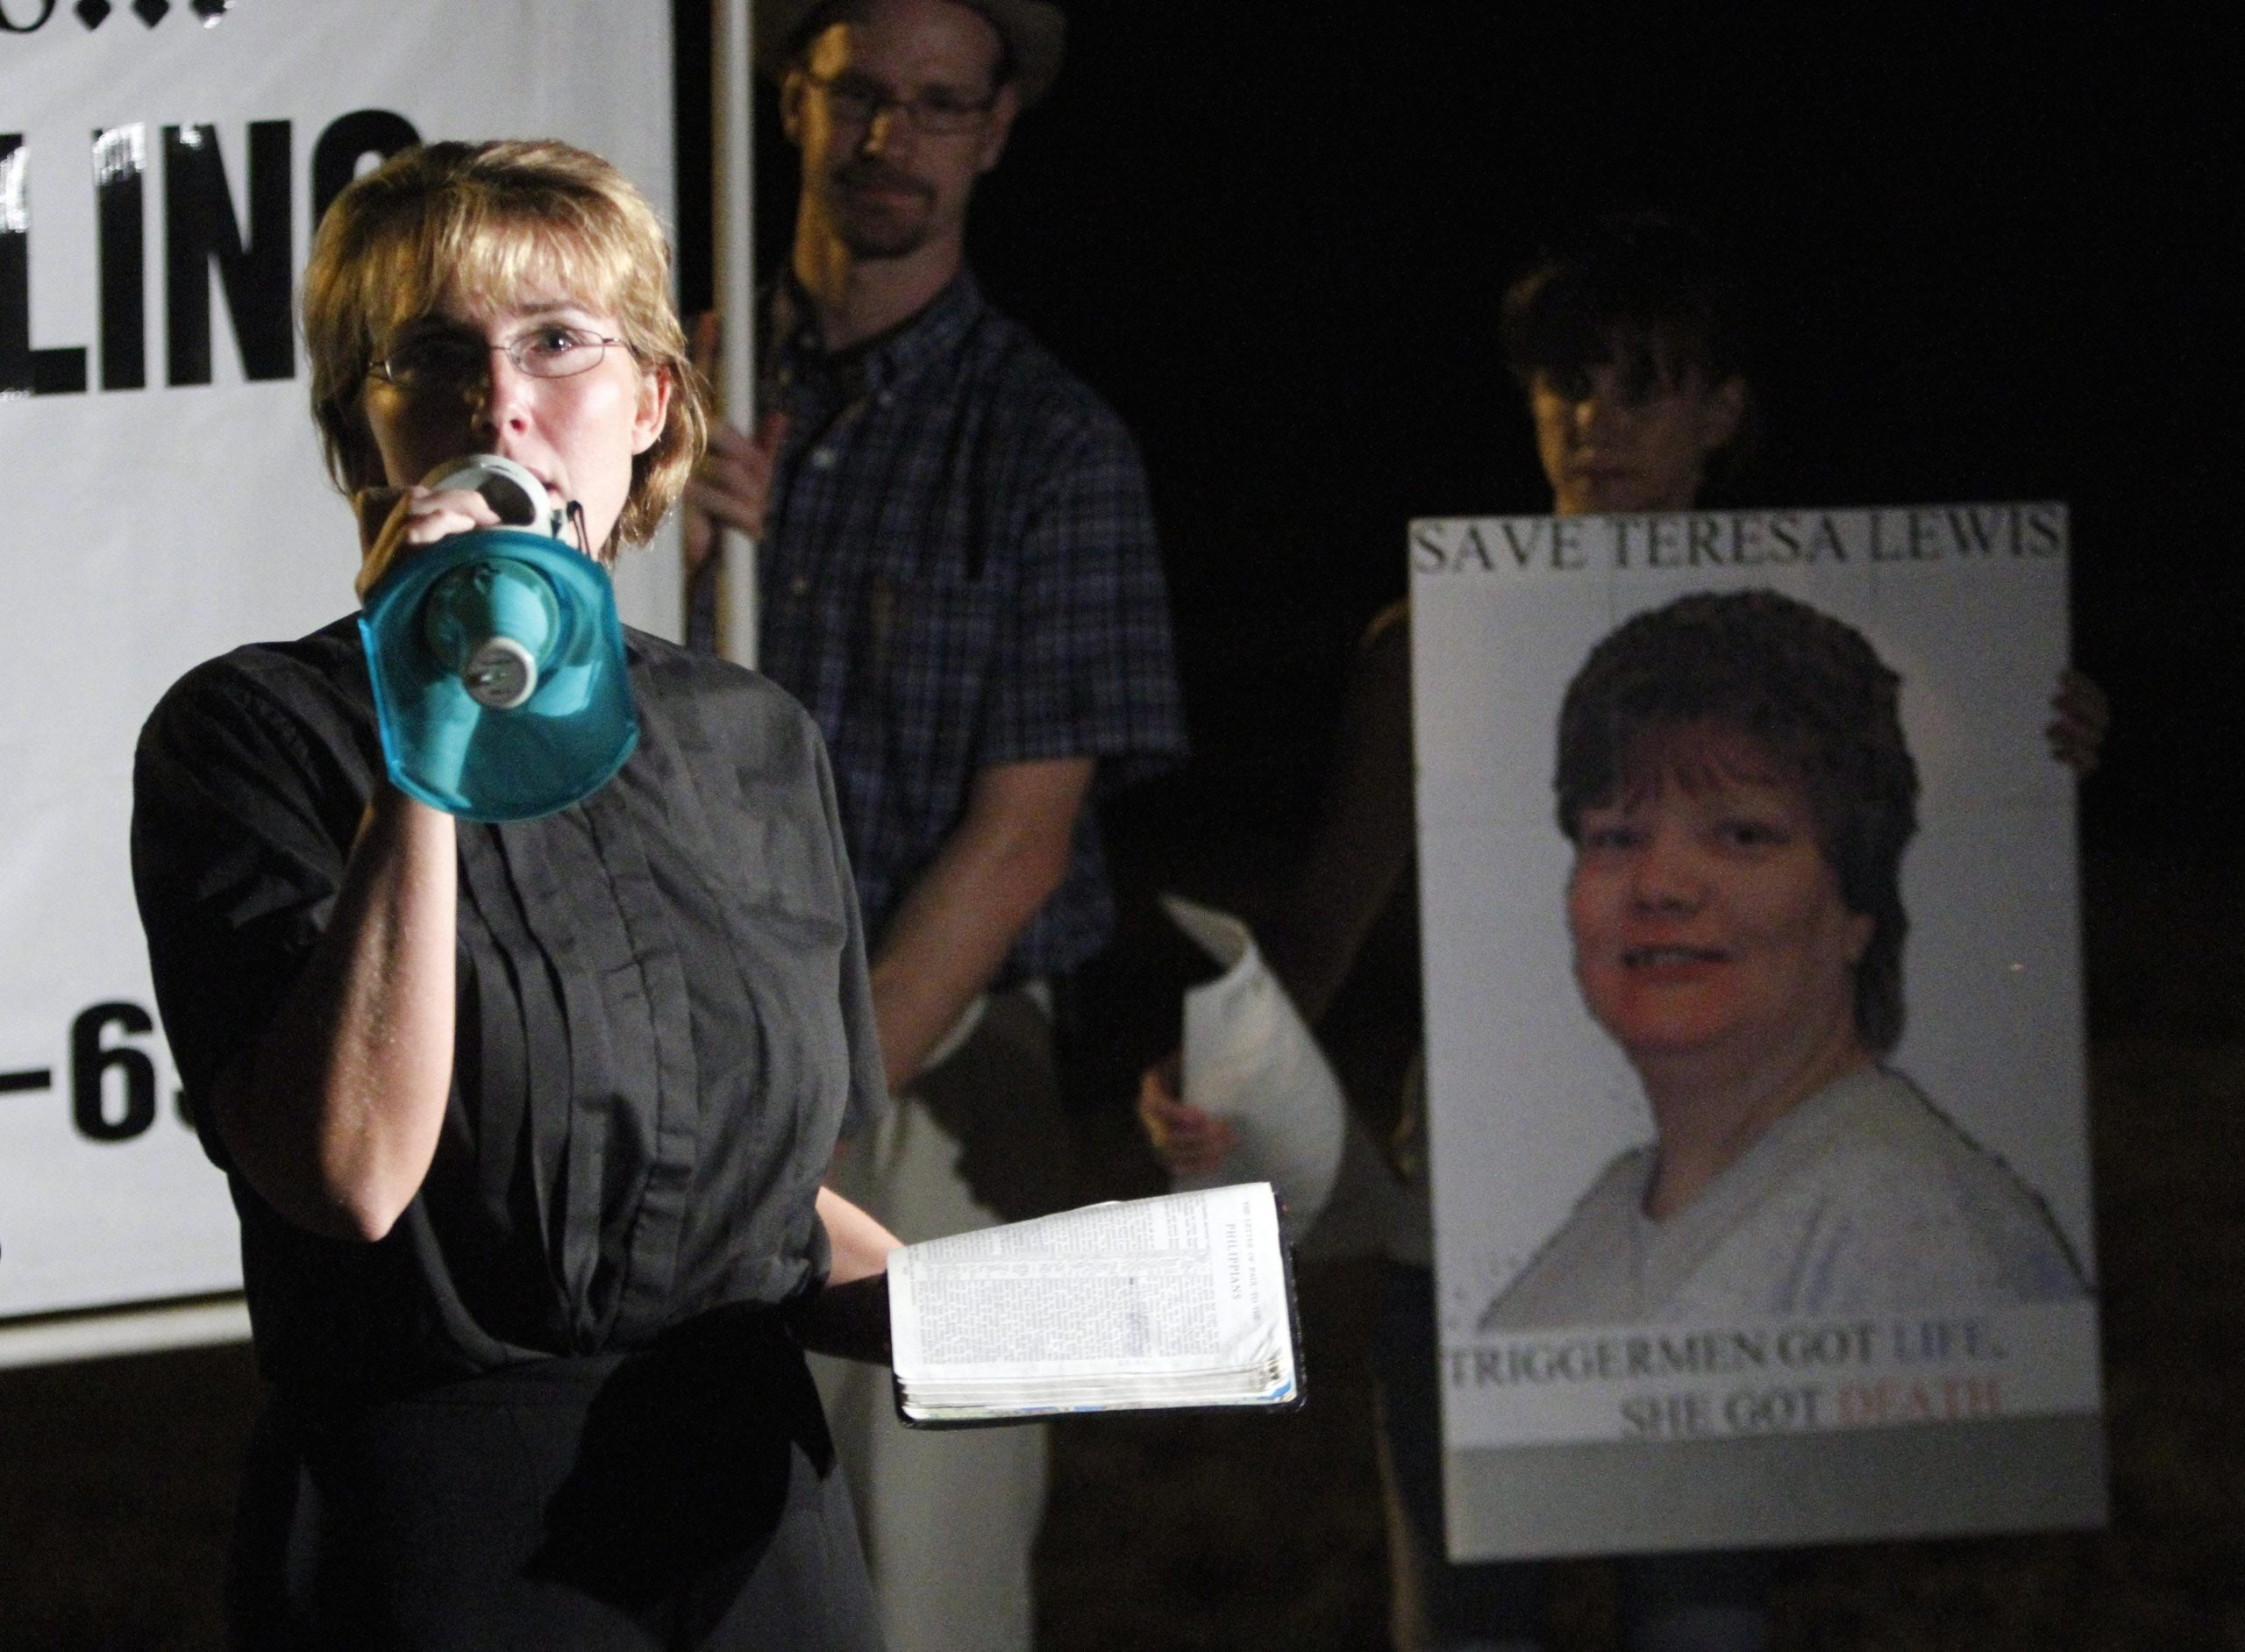 Death penalty protestor and former Fluvanna womens prison chaplain, Rev. Lynn Litchfield, reads a passage from the bible outside the Greensville Correctional Center in Jarratt, Va., on Sept. 23, 2010.